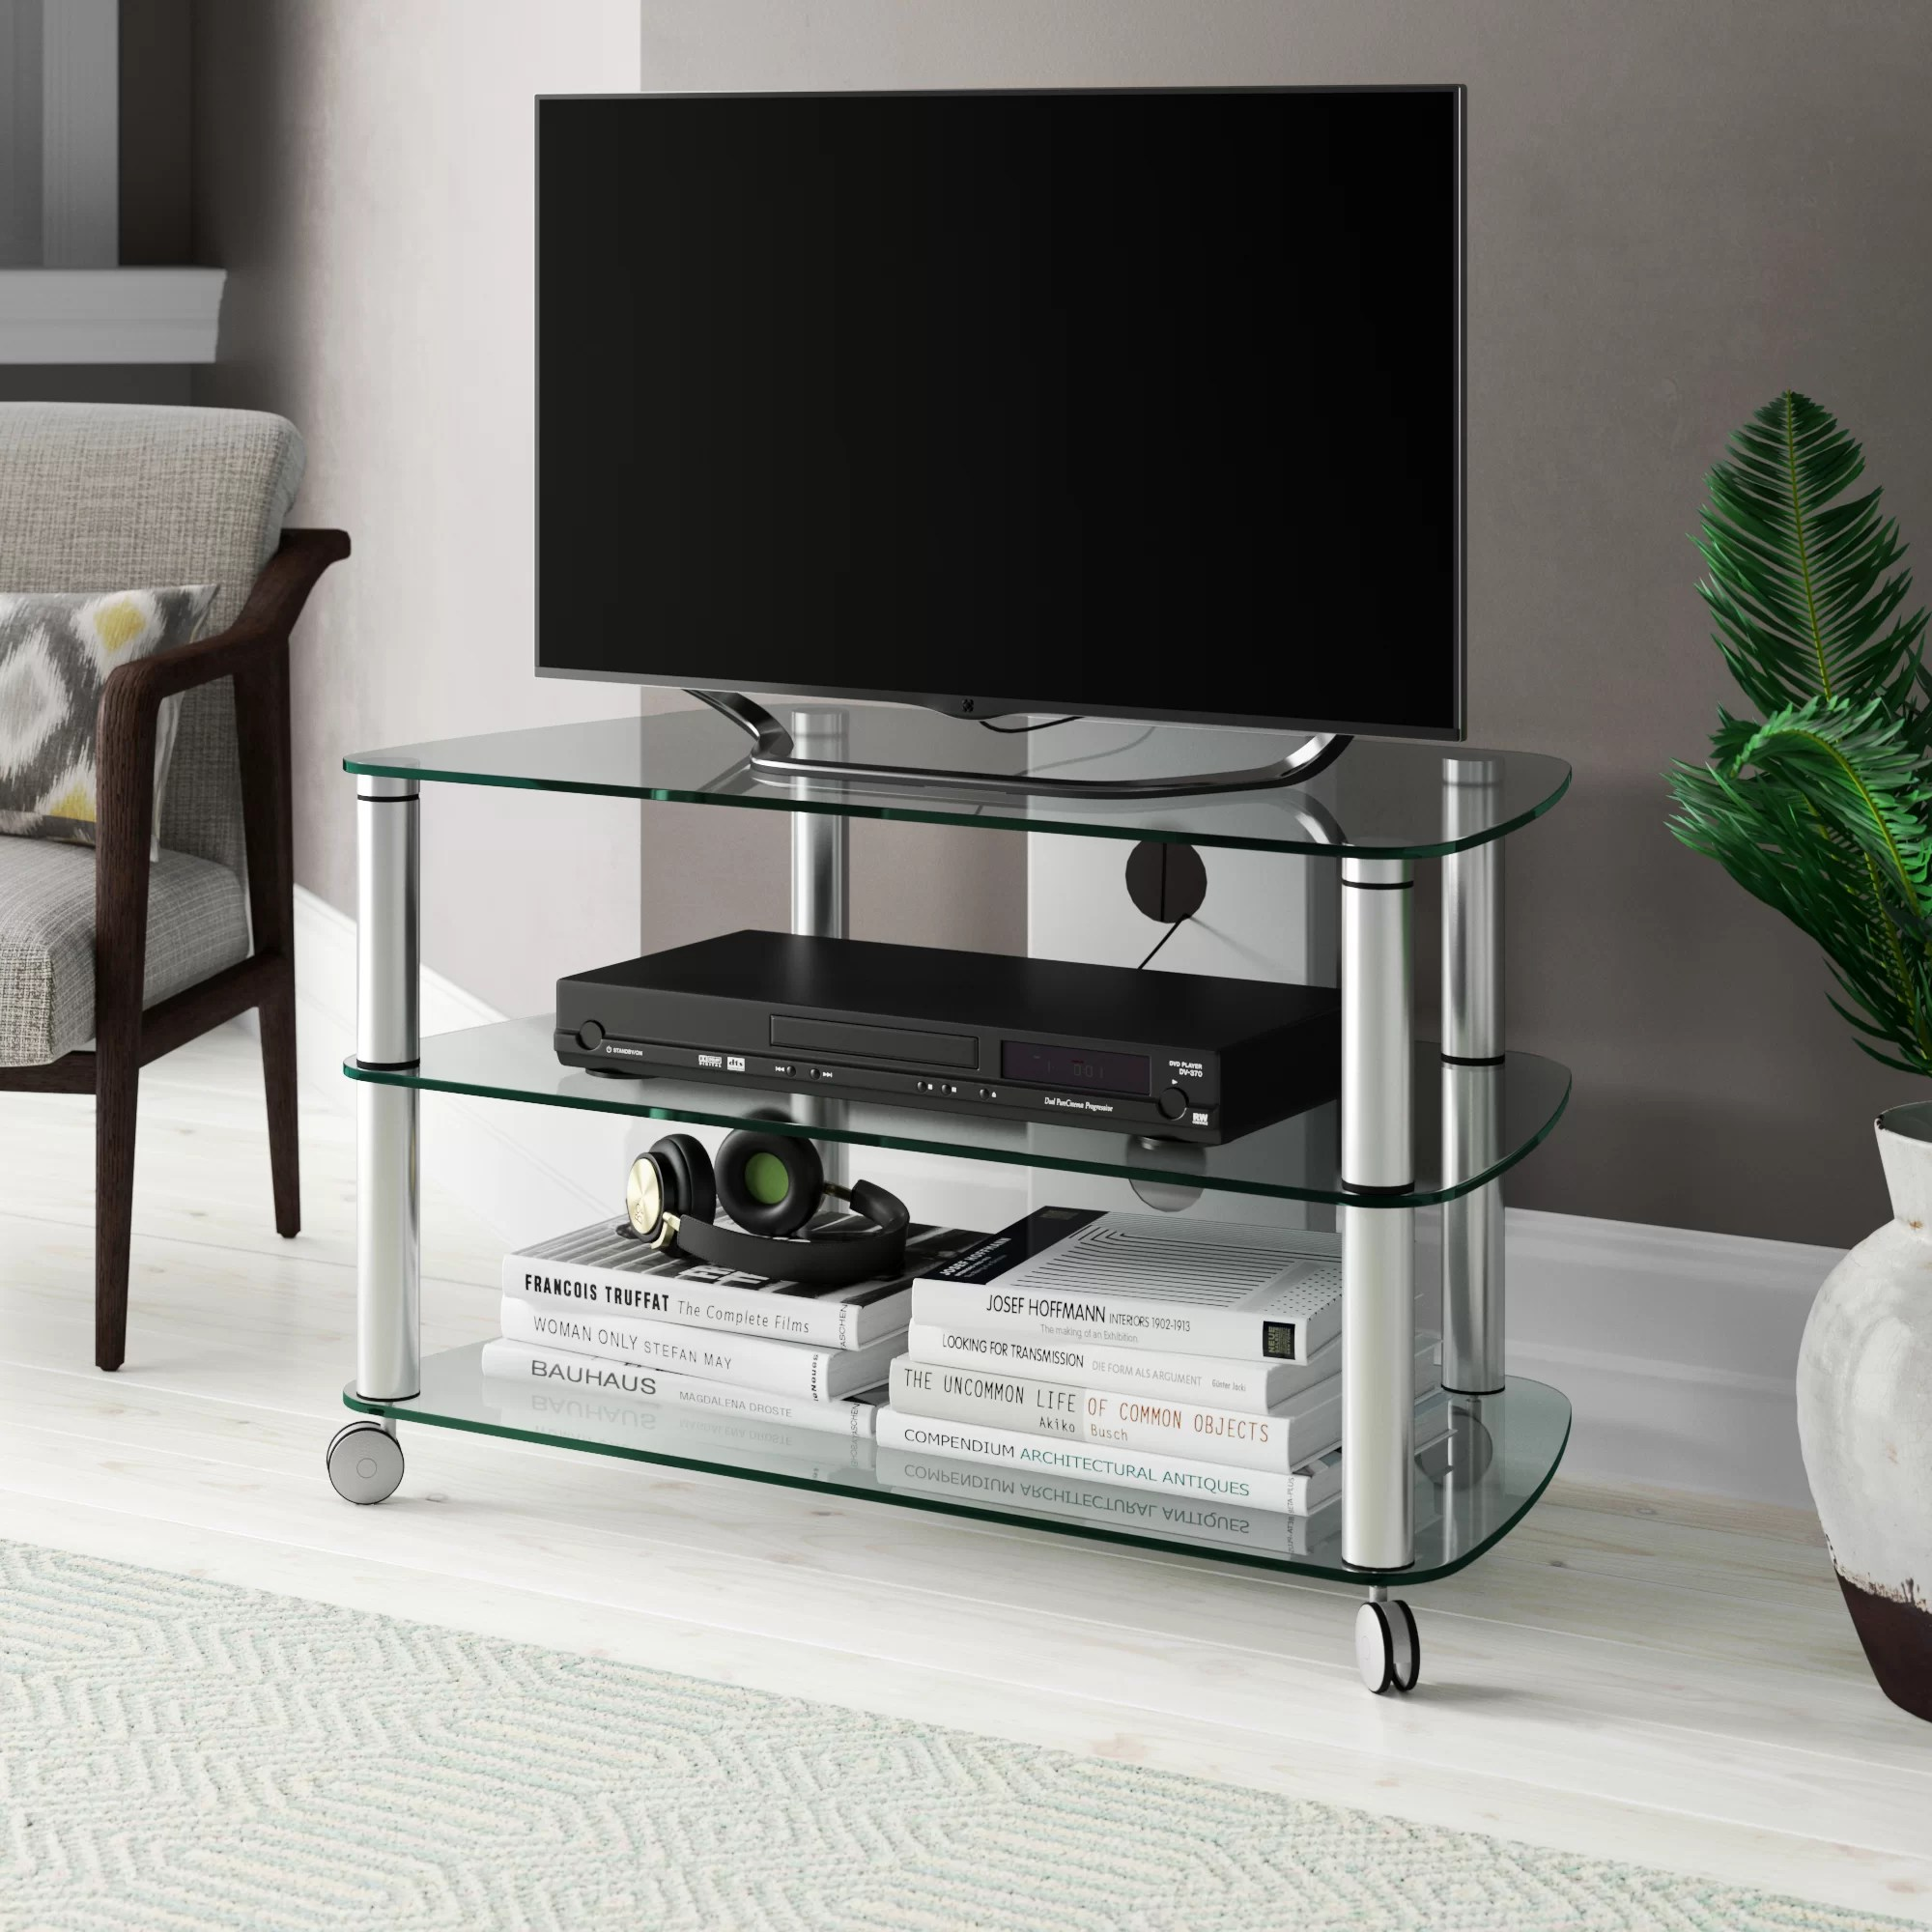 Tv Rack Mit Rollen Jahnke Cuuba Sr 910 Tv Stand For Tvs Up To 50\